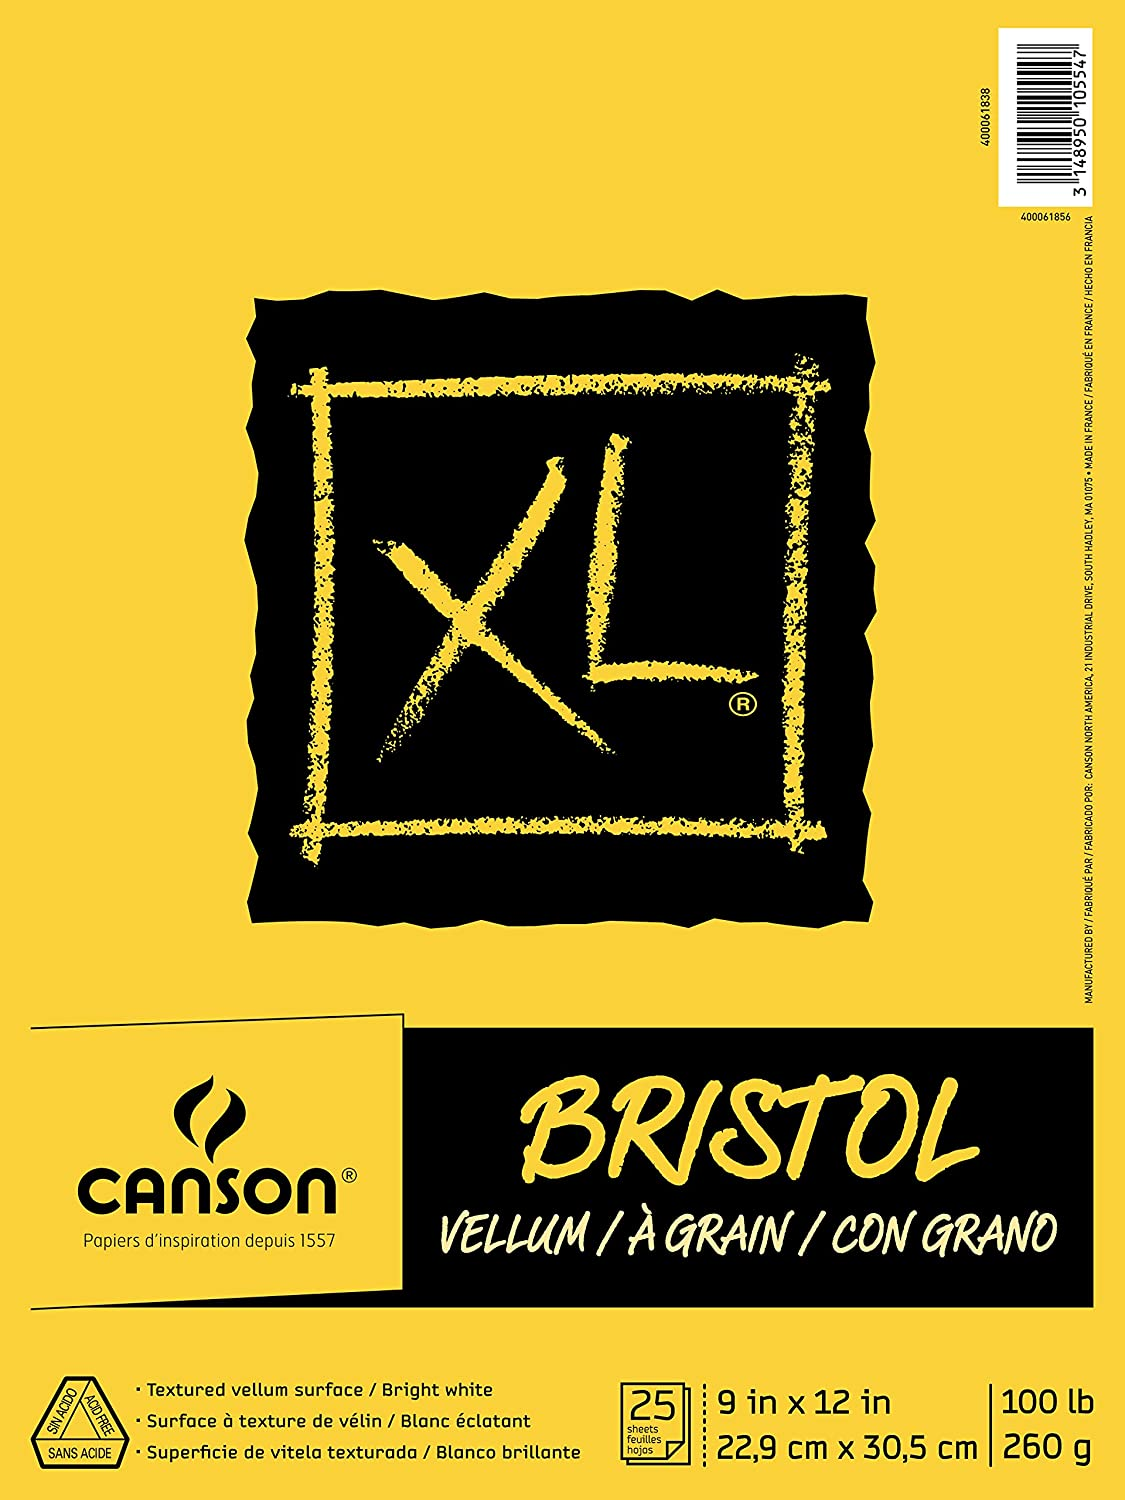 Canson XL Series Bristol Vellum Paper Pad, Heavyweight Paper for Pencil, Vellum Finish, Fold Over, 100 Pound, 9 x 12 Inch, Bright White, 25 Sheets